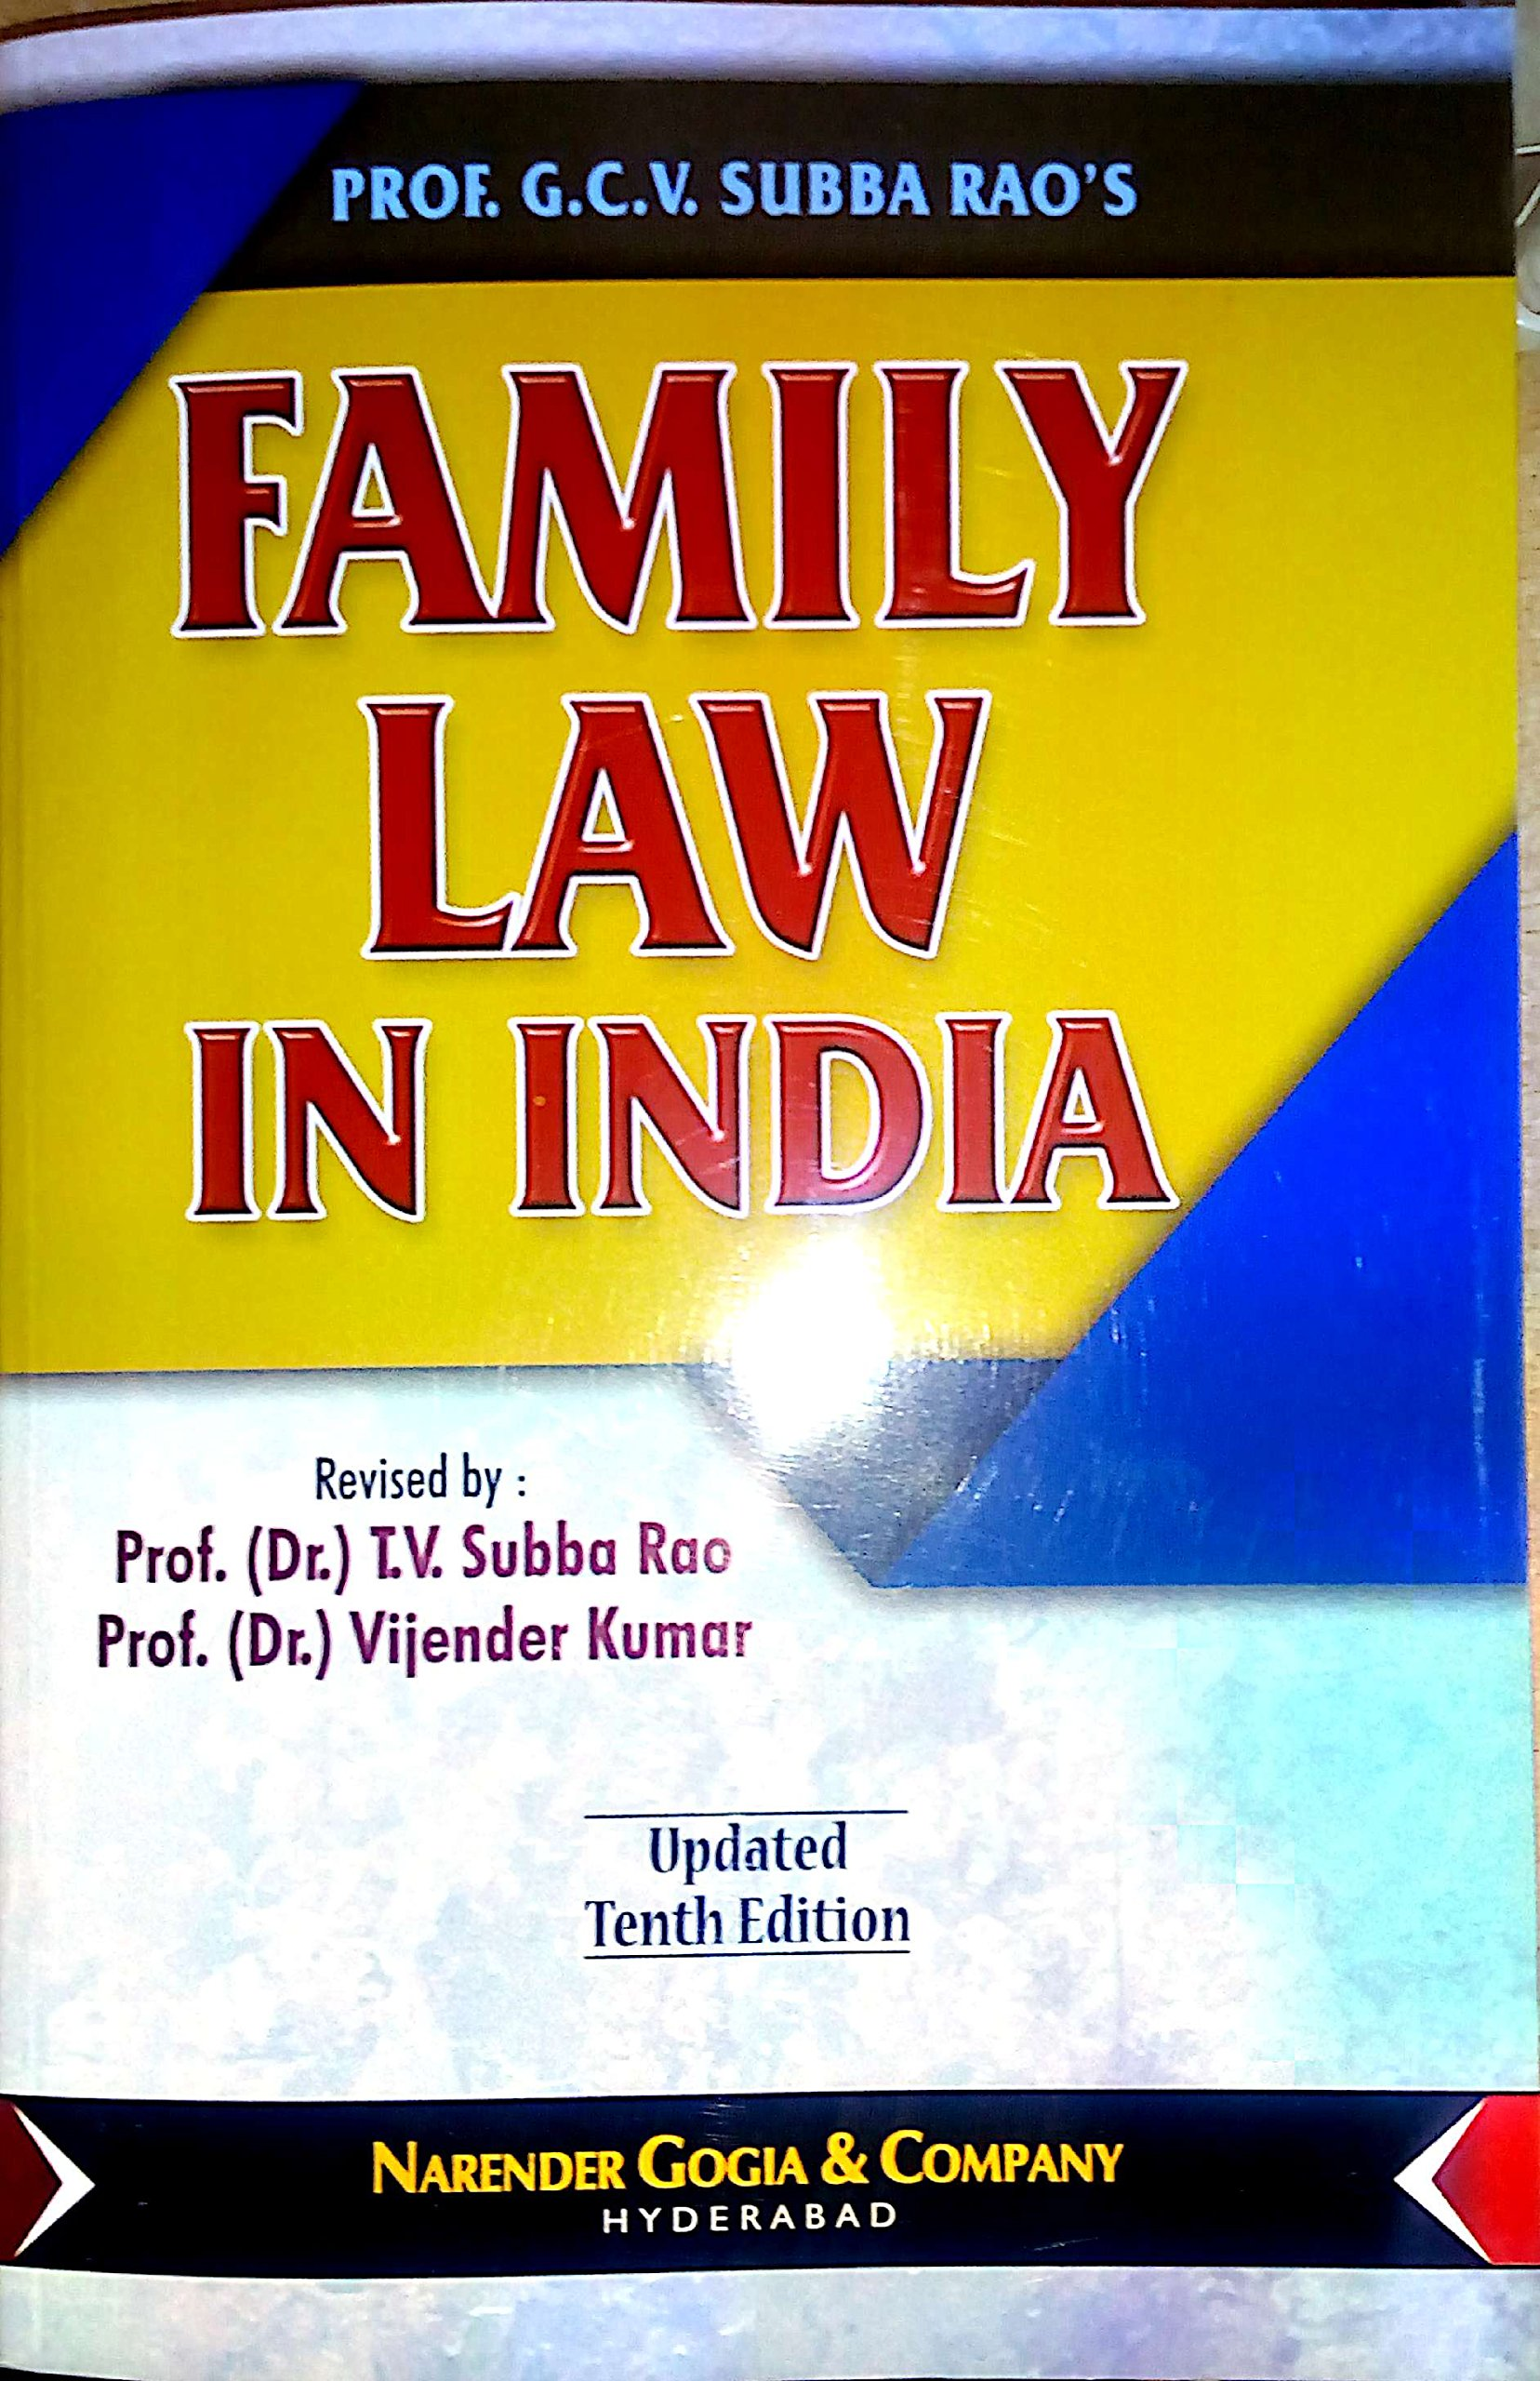 Ashok Law House - LL.B. (3YDC) I Semester, Contract - I, Family Law ...